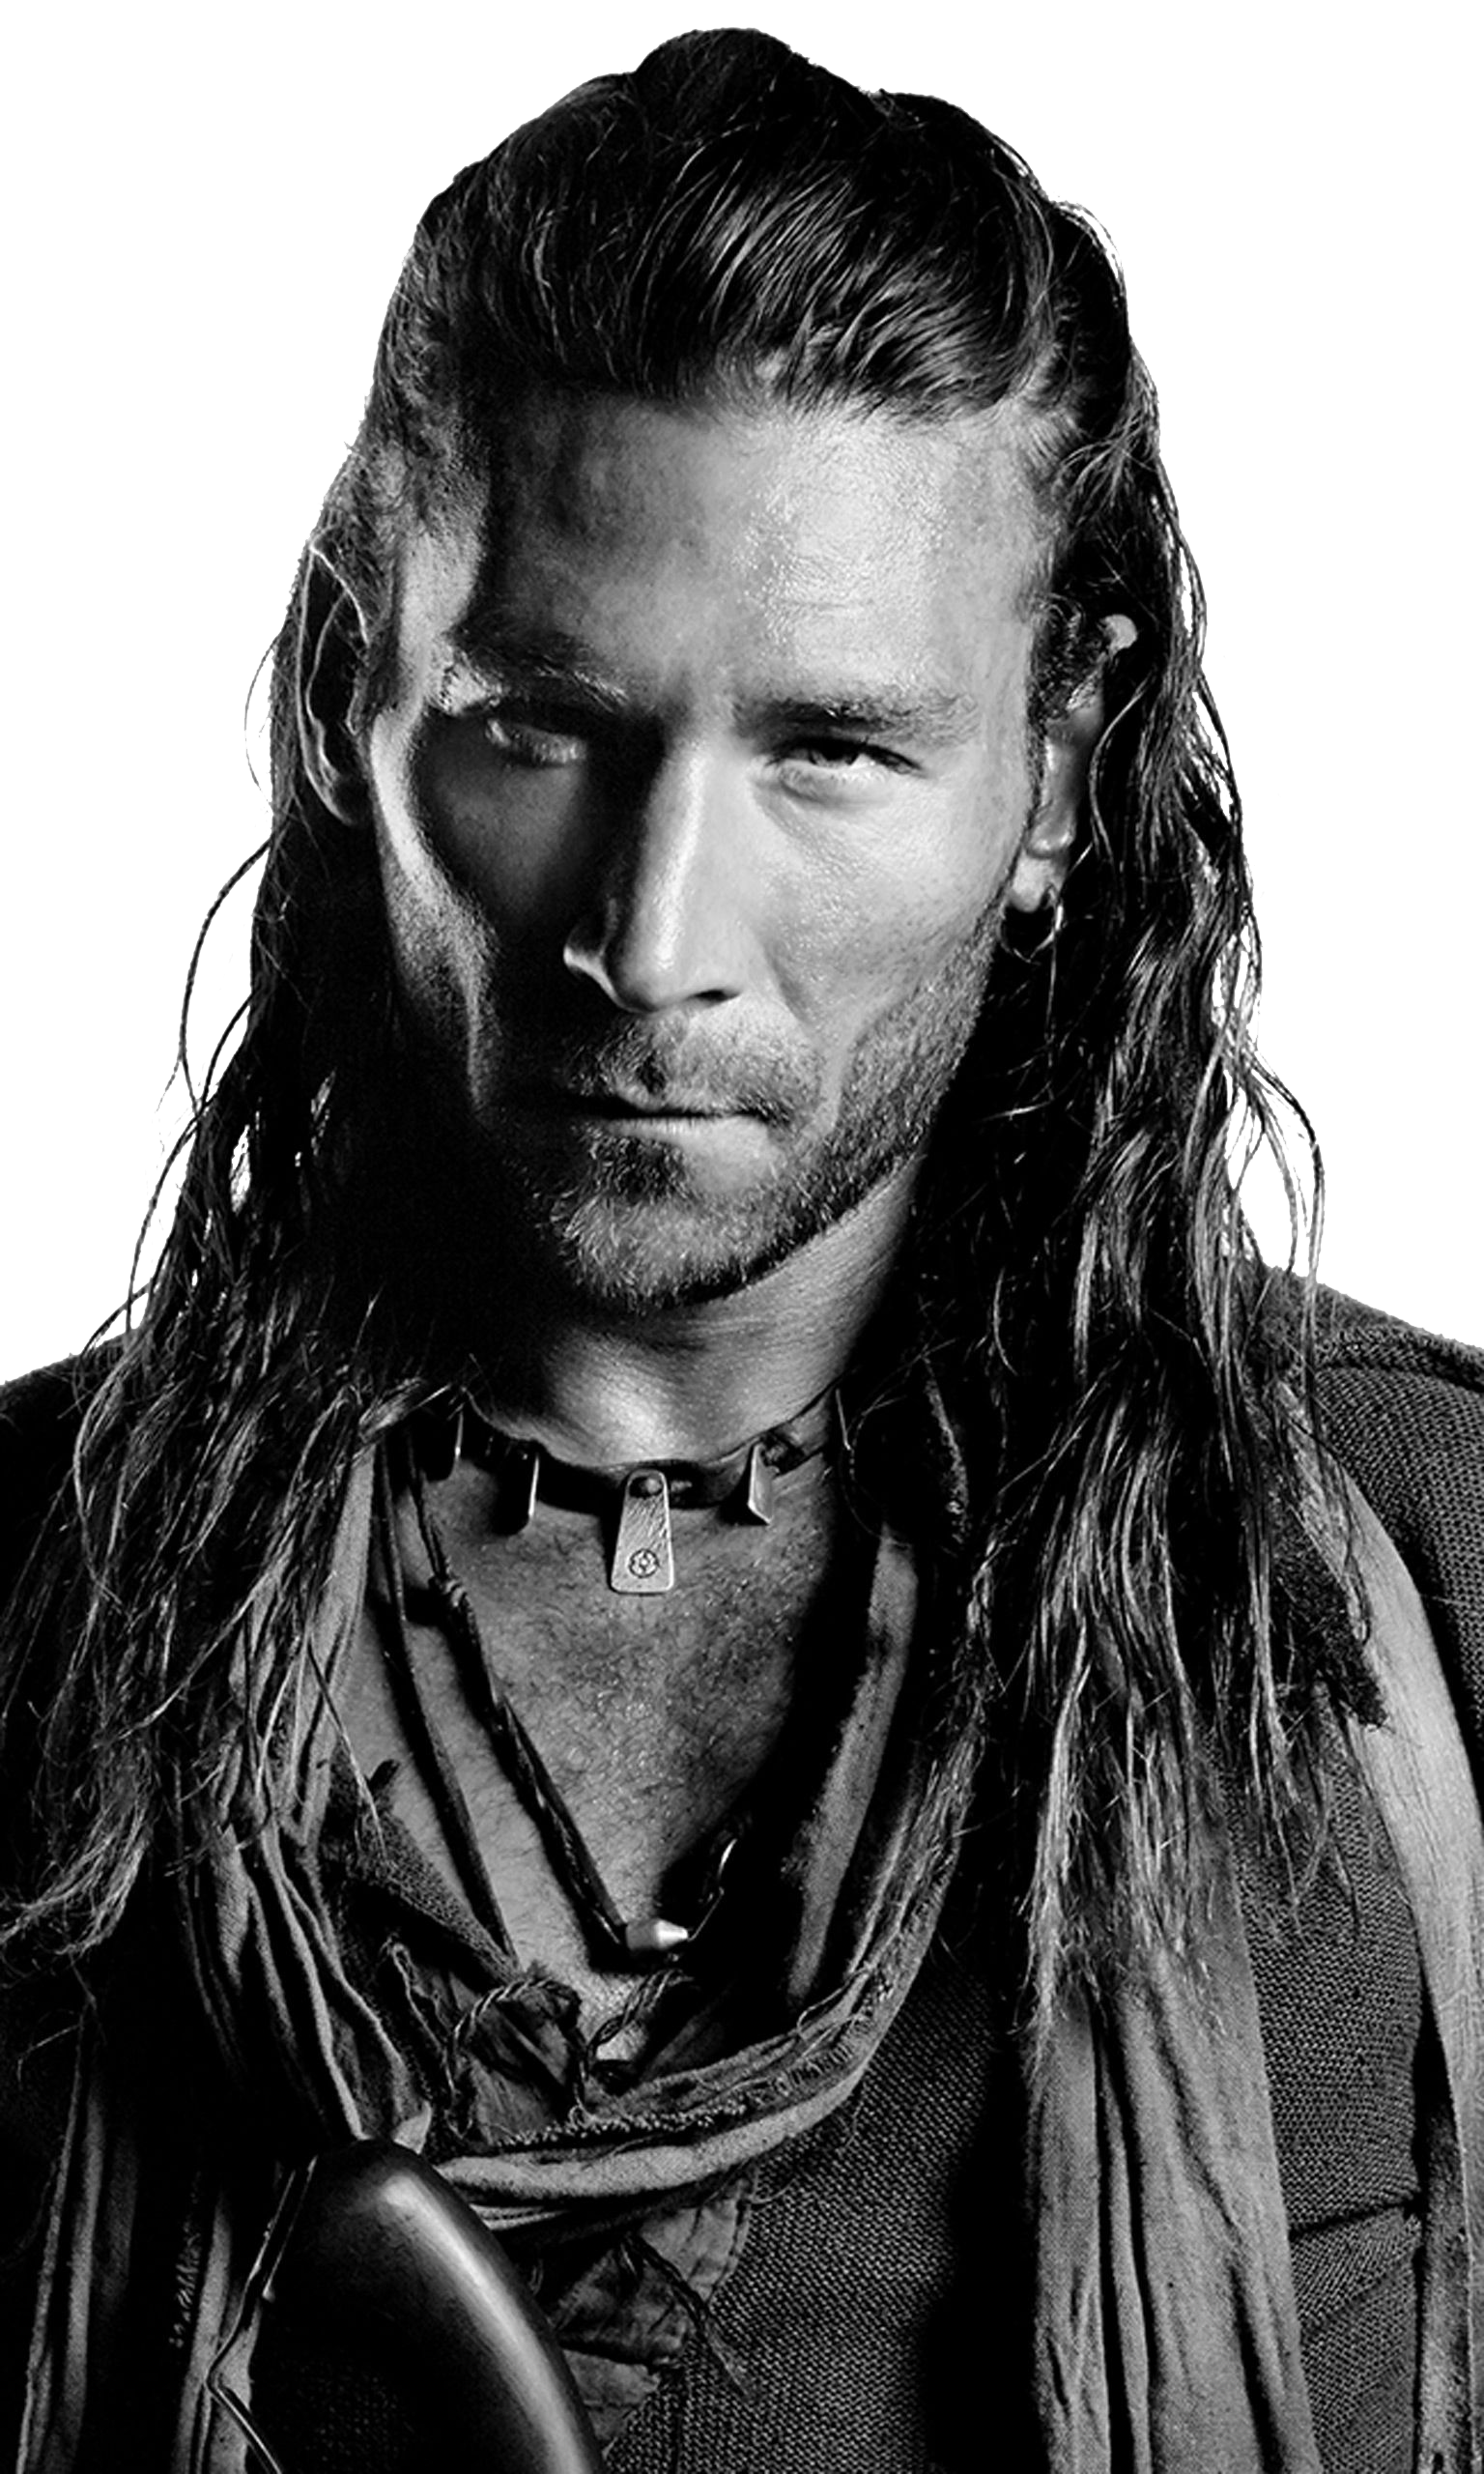 zach mcgowan emily johnsonzach mcgowan witcher, zach mcgowan voice, zach mcgowan imdb, zach mcgowan dead, zach mcgowan instagram, zach mcgowan the walking dead, zach mcgowan gif hunt, zach mcgowan workout, zach mcgowan fansite, zach mcgowan height, zach mcgowan latest news, zach mcgowan interview, zach mcgowan films, zach mcgowan wife, zach mcgowan, zach mcgowan the 100, zach mcgowan shameless, zach mcgowan emily johnson, zach mcgowan black sails, zach mcgowan net worth